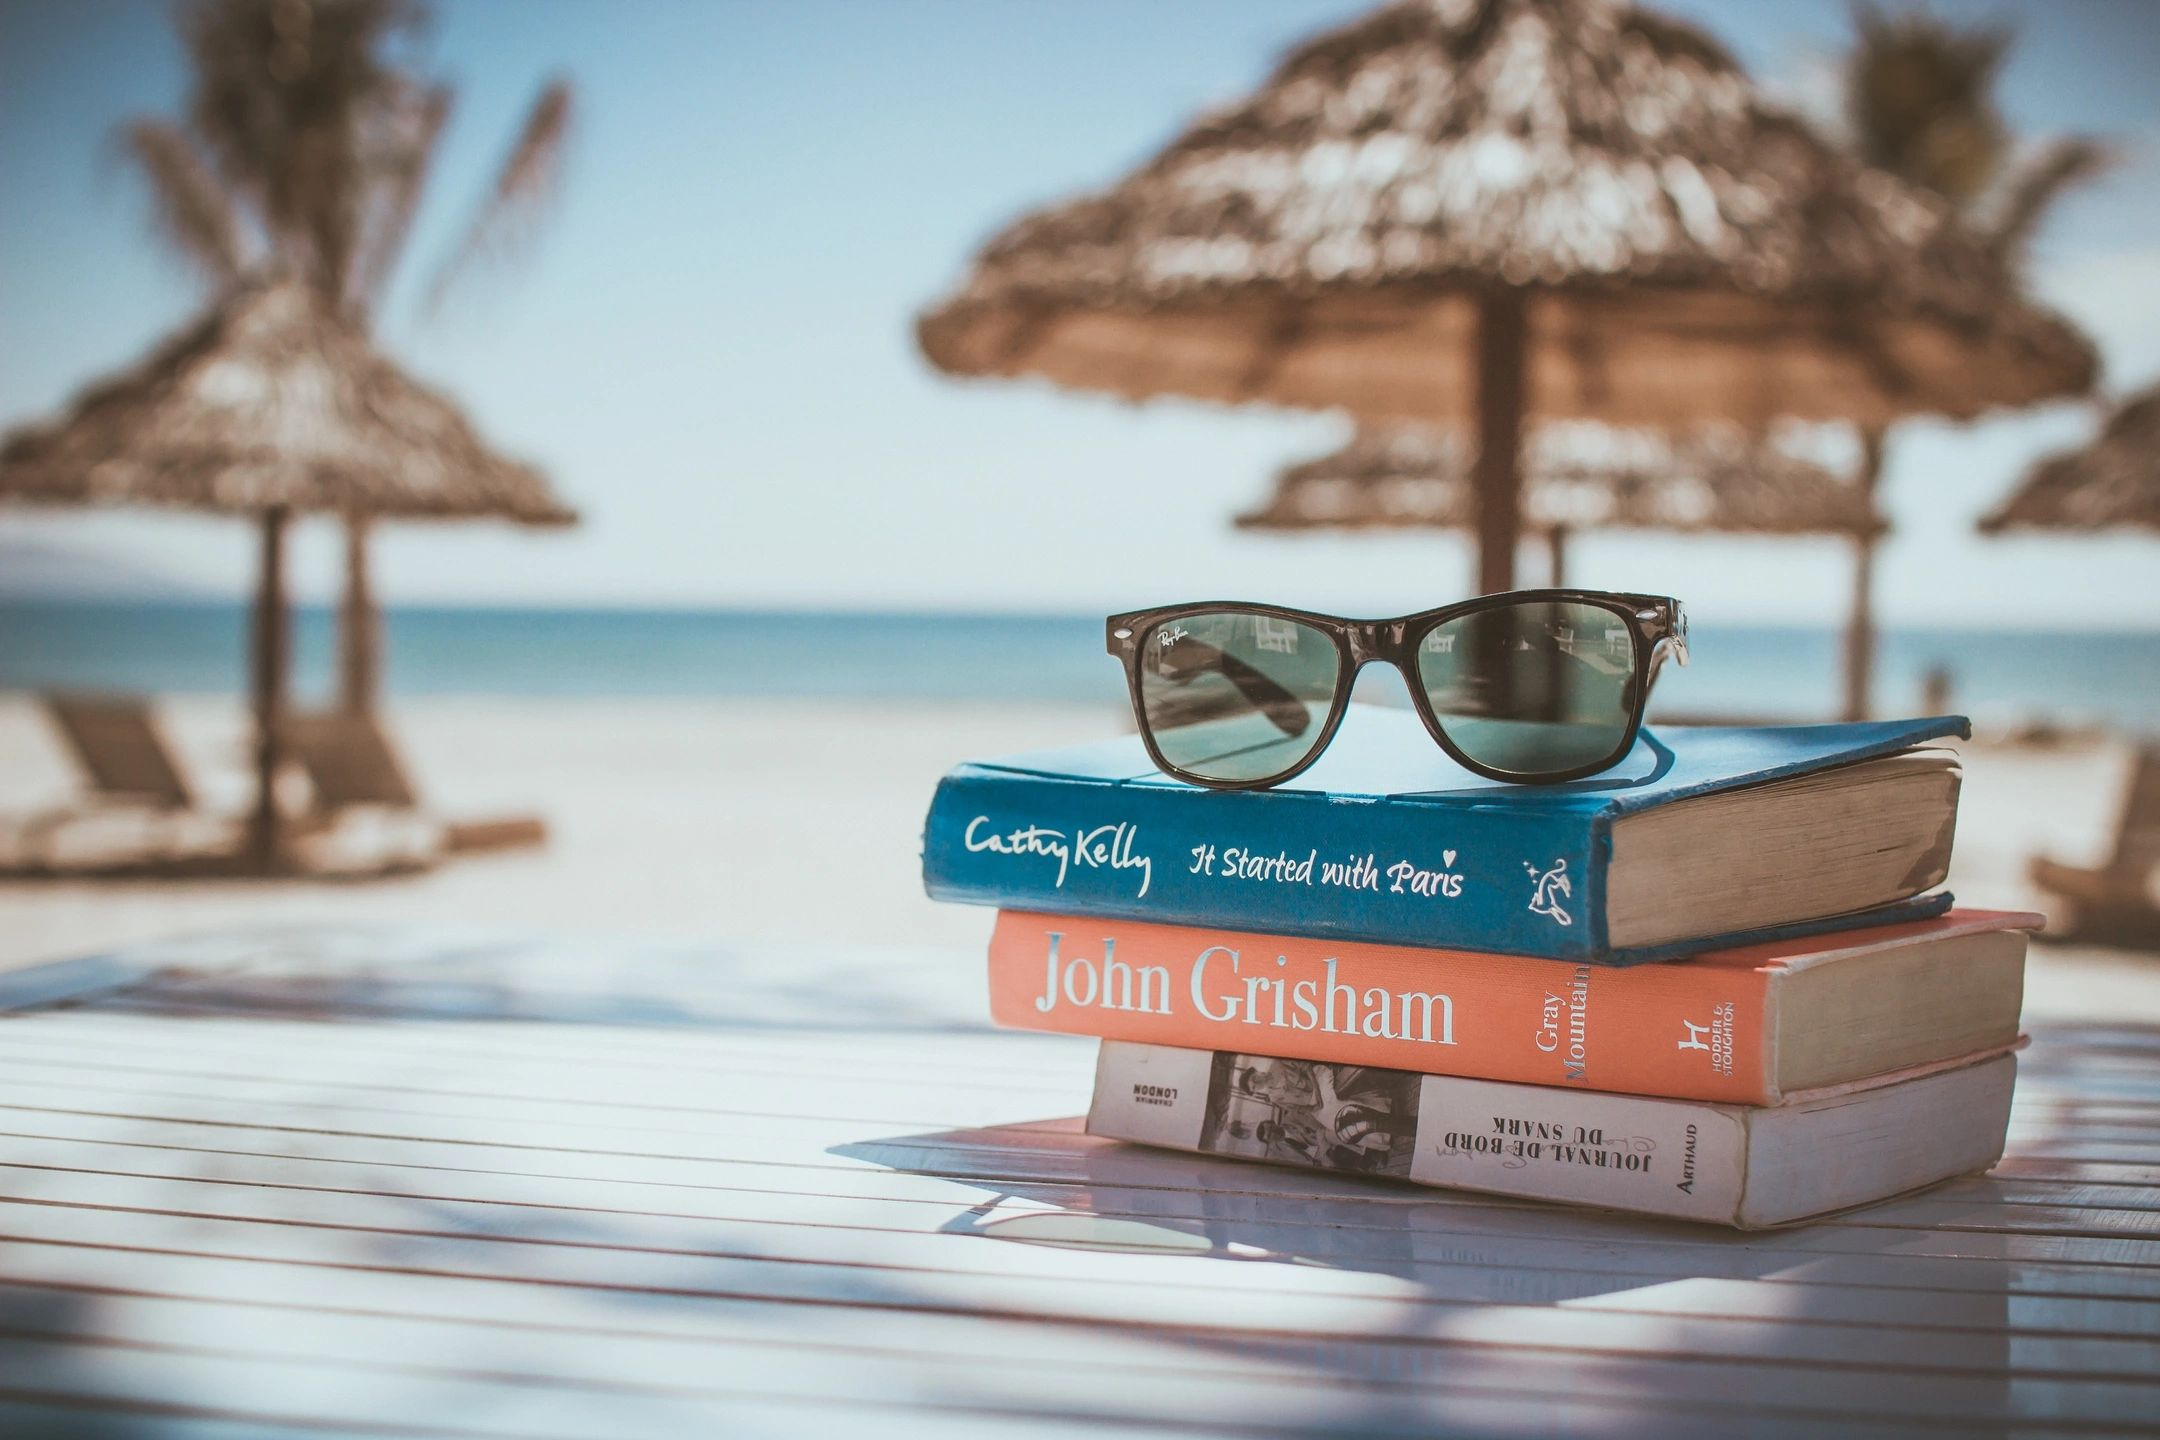 Books for Summer 2019